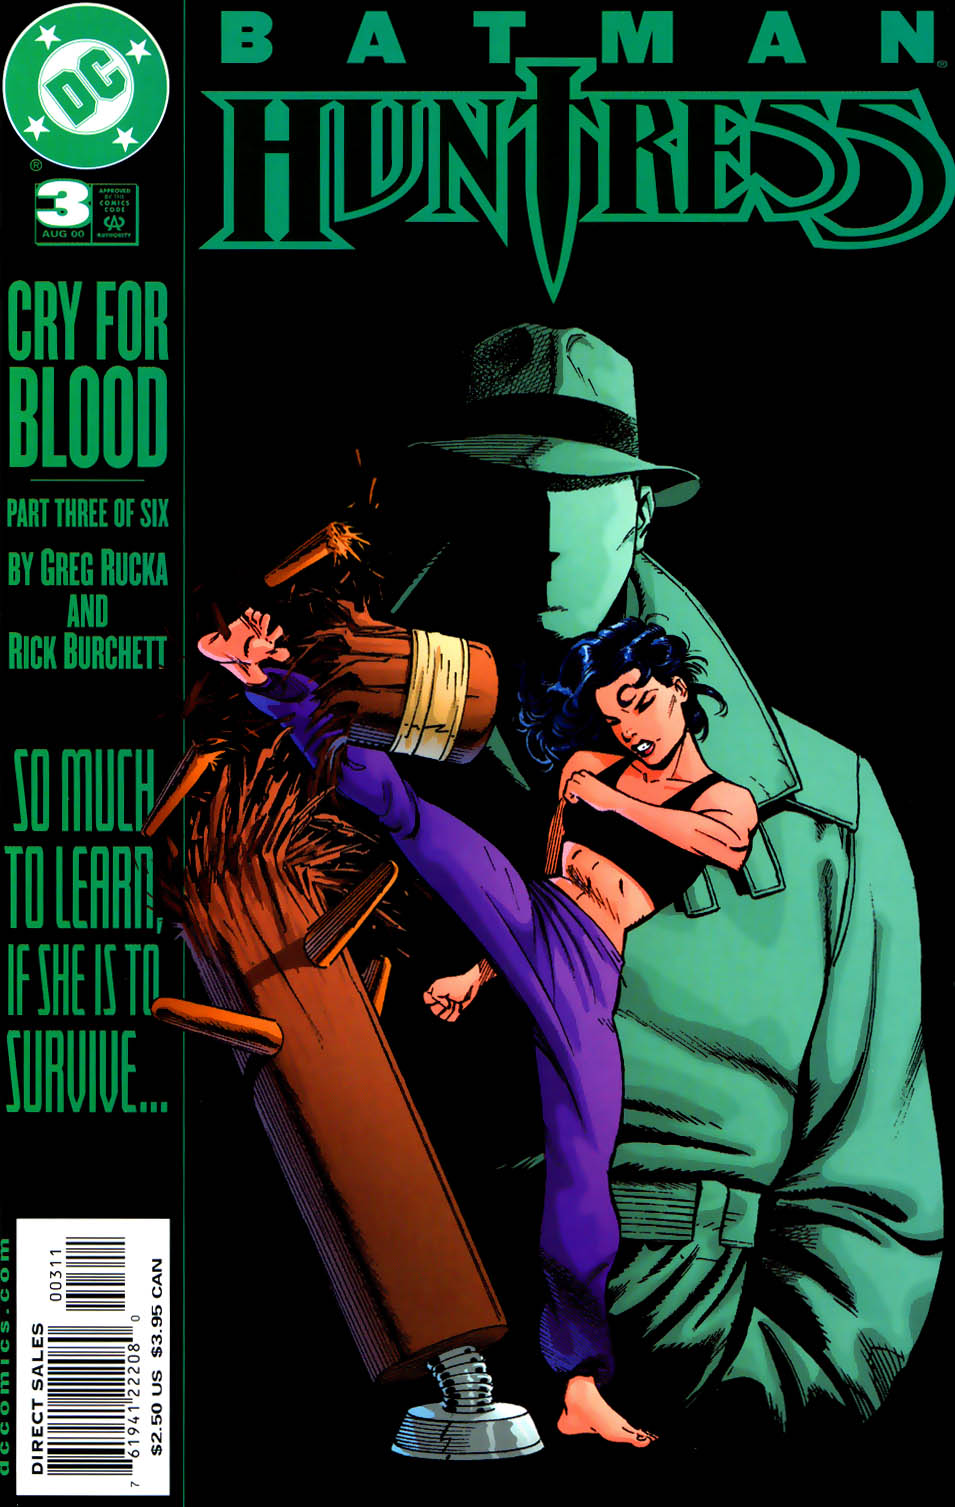 Read online Batman/Huntress: Cry for Blood comic -  Issue #3 - 1